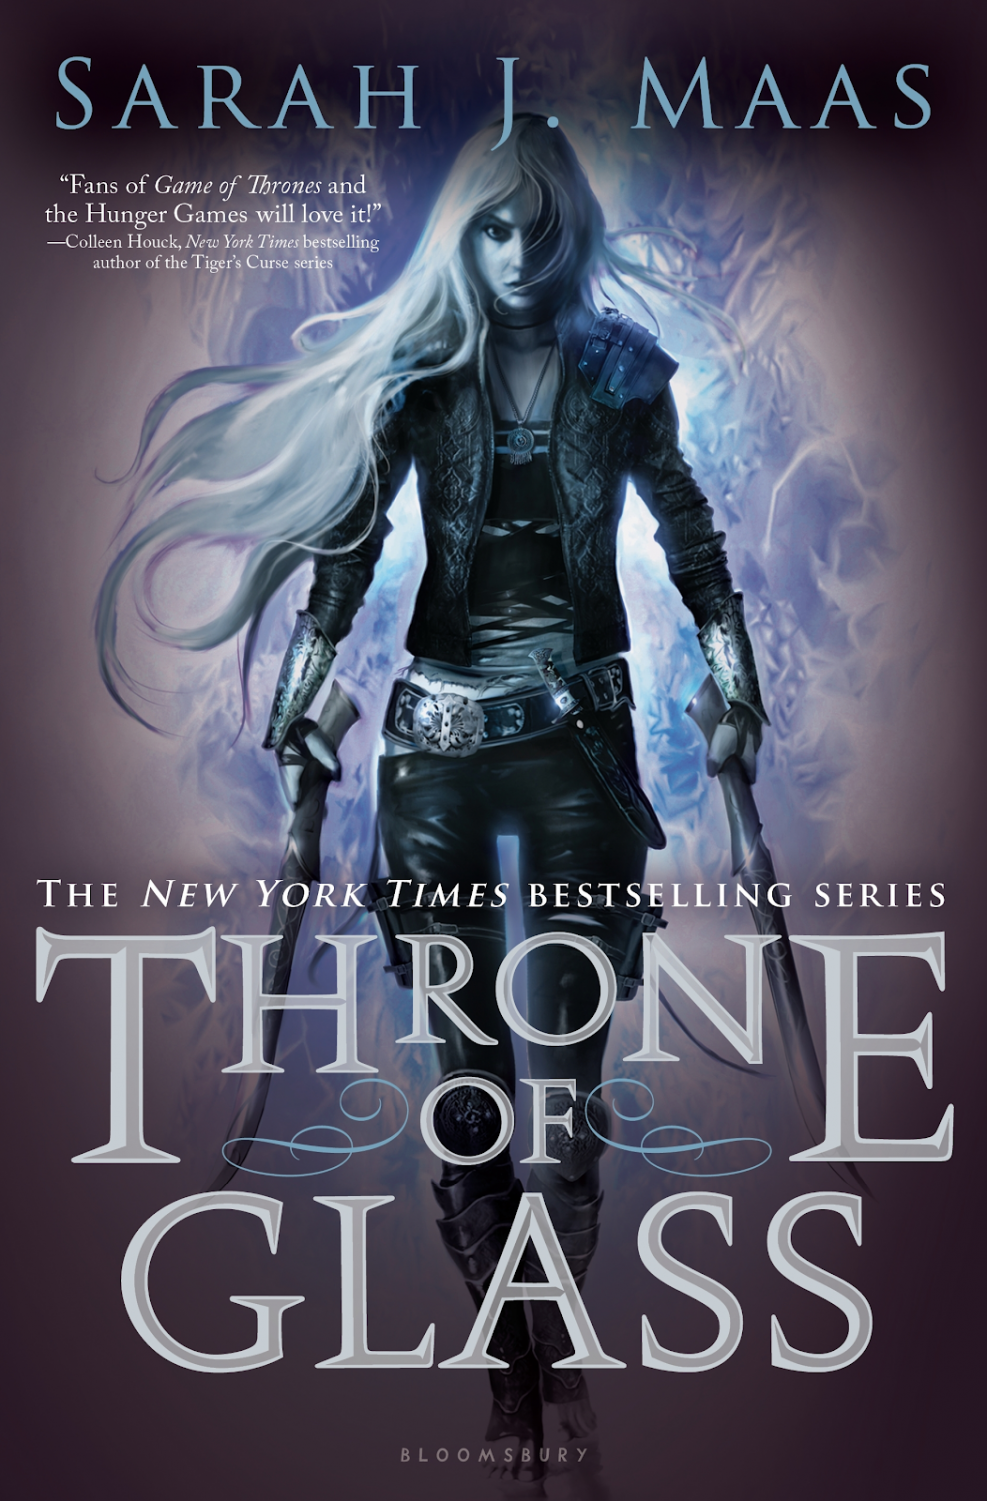 Sarah J. Mass's series, Throne of Glass, will go down in literary history.